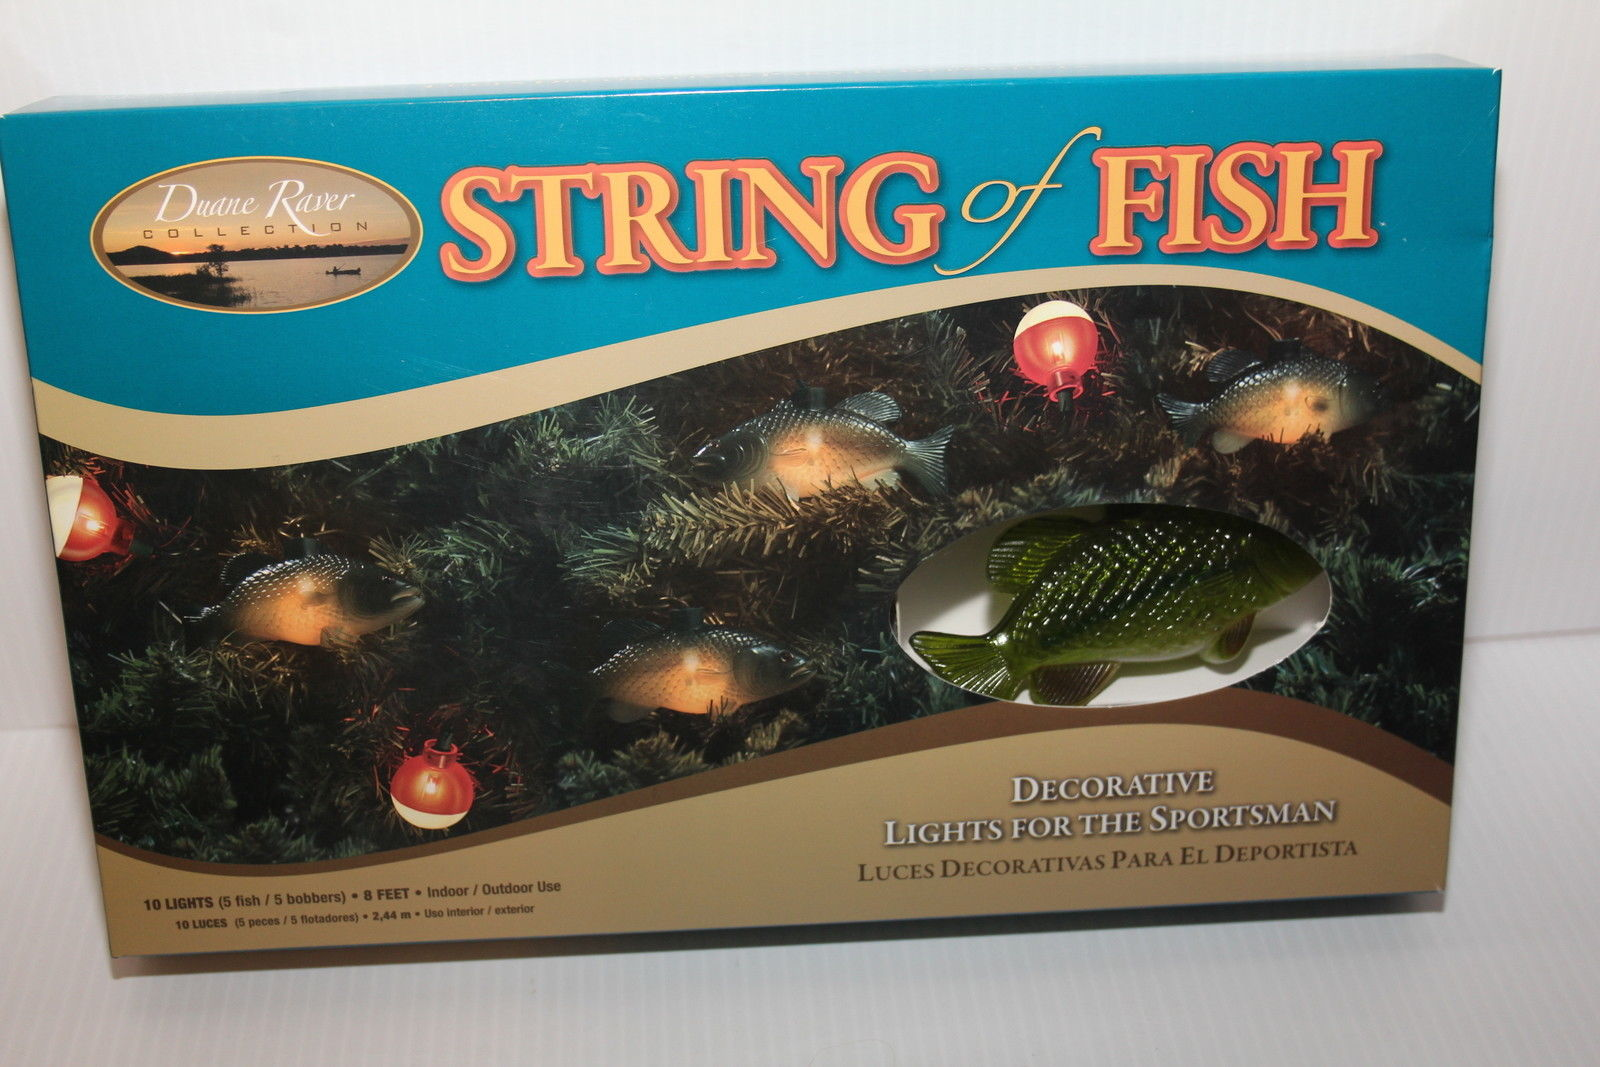 Duane Raver Collection String of Fish